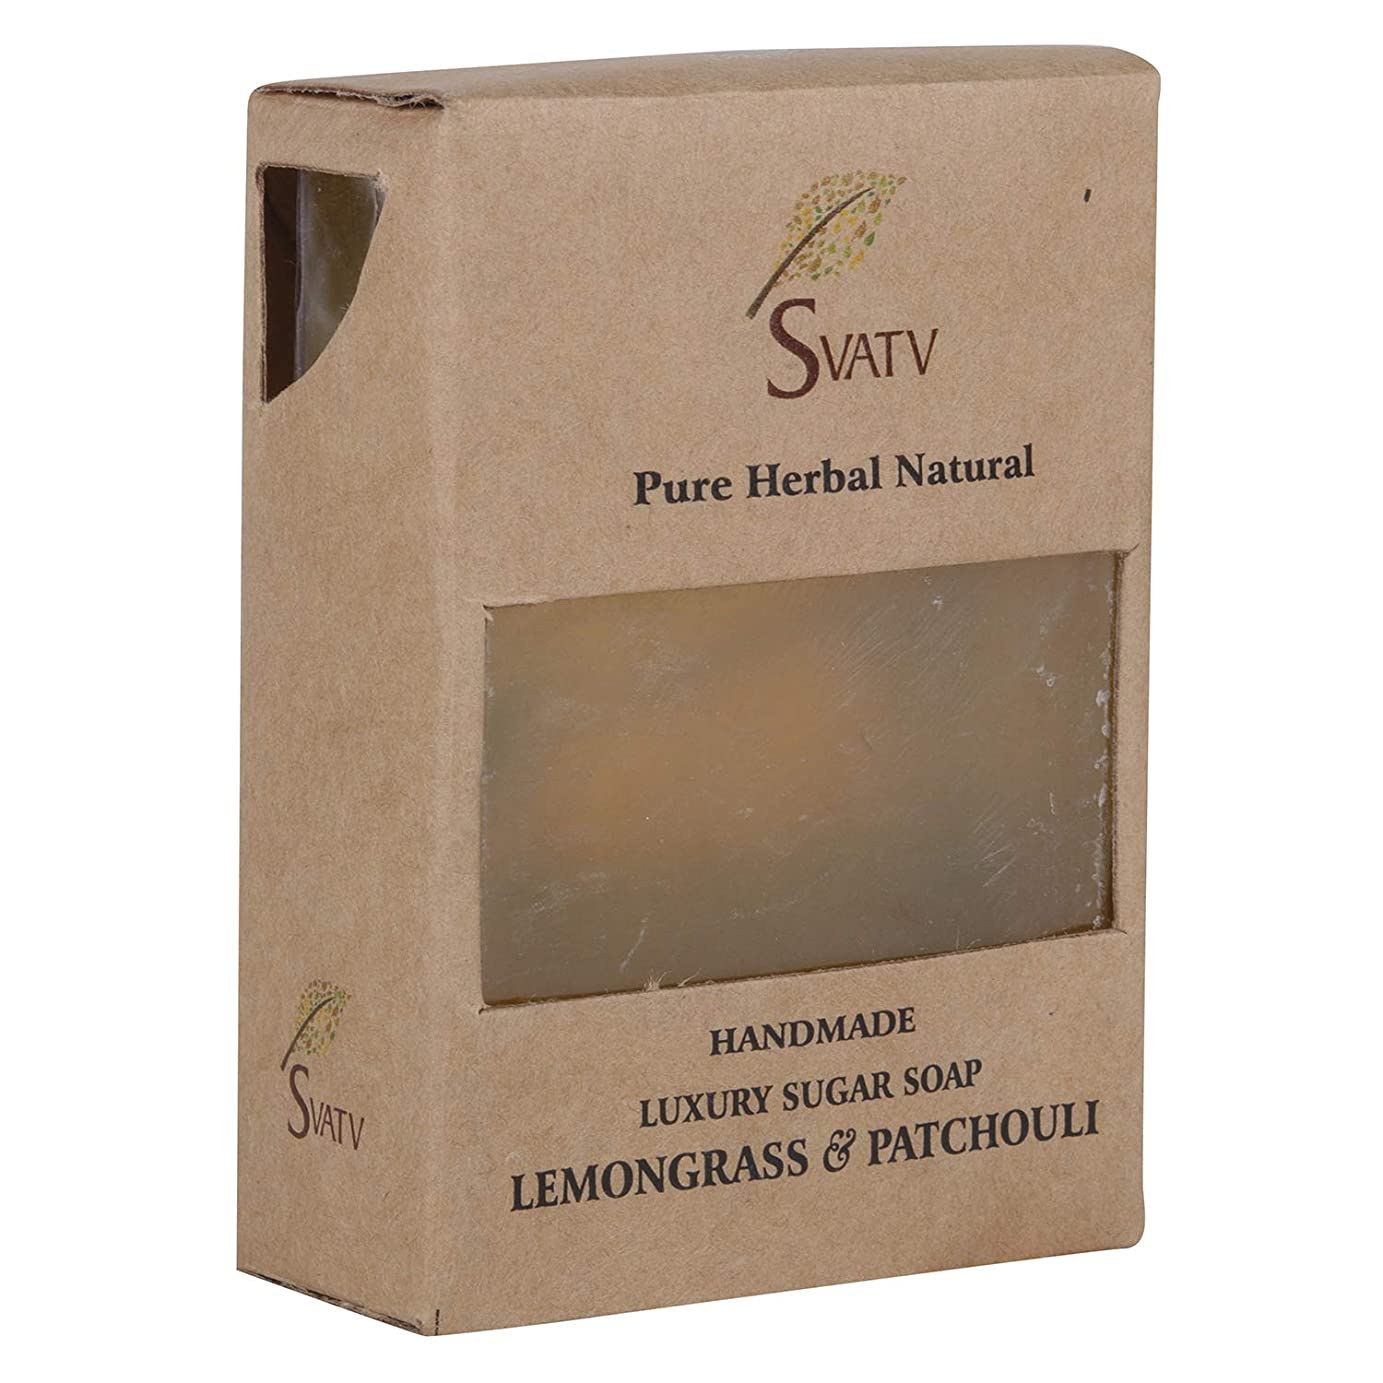 コードサイレンキャロラインSVATV Handmade Luxury Sugar Soap Lemongrass & Patchouli For All Skin types 100g Bar